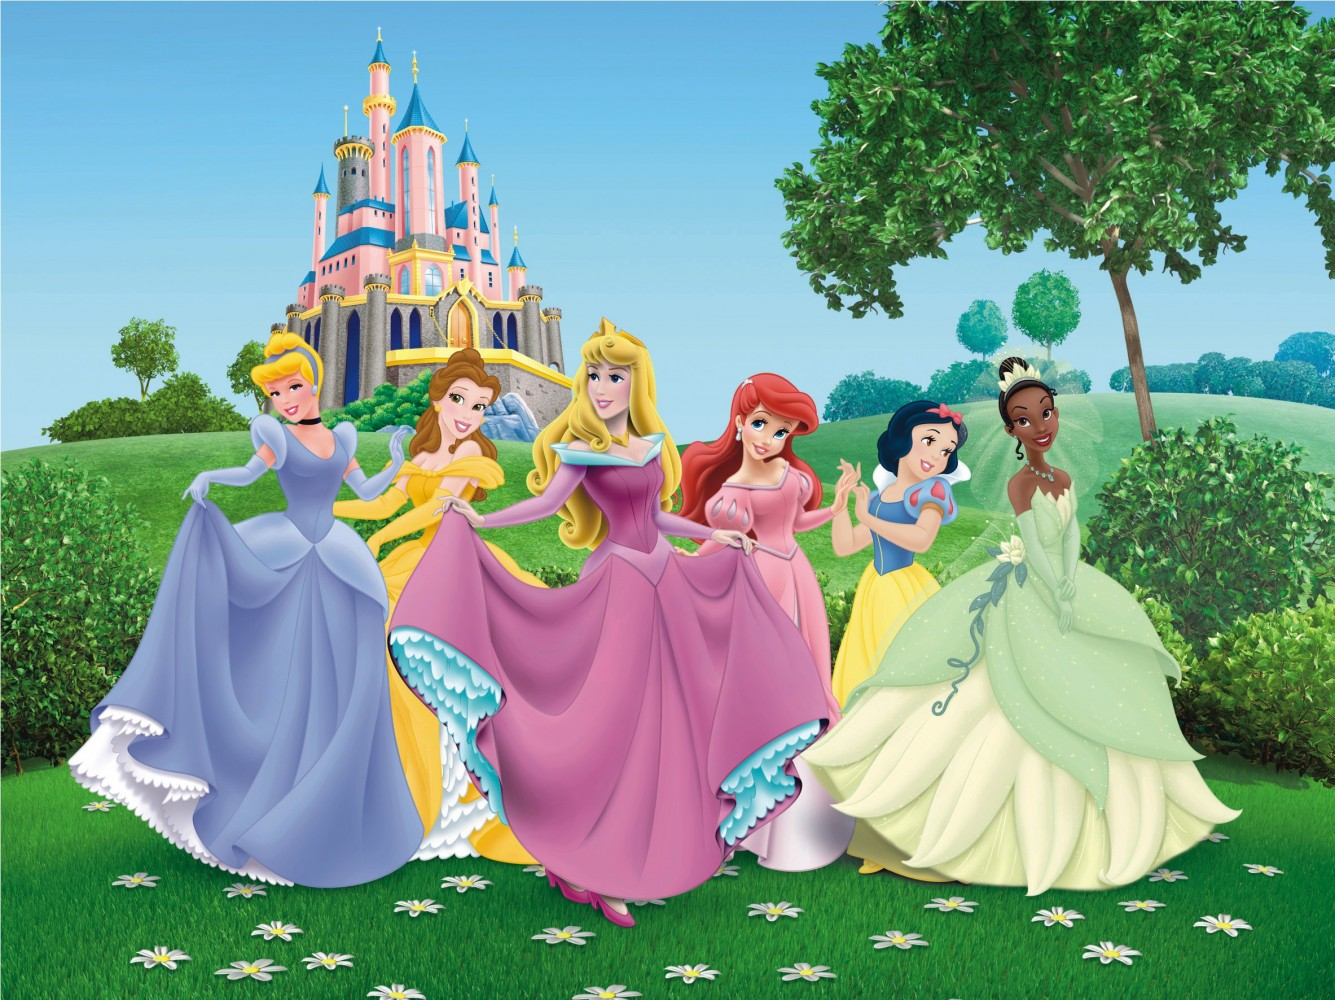 Wall mural wallpaper Disney princesses princess photo 360 cm x 270 cm 1335x1000